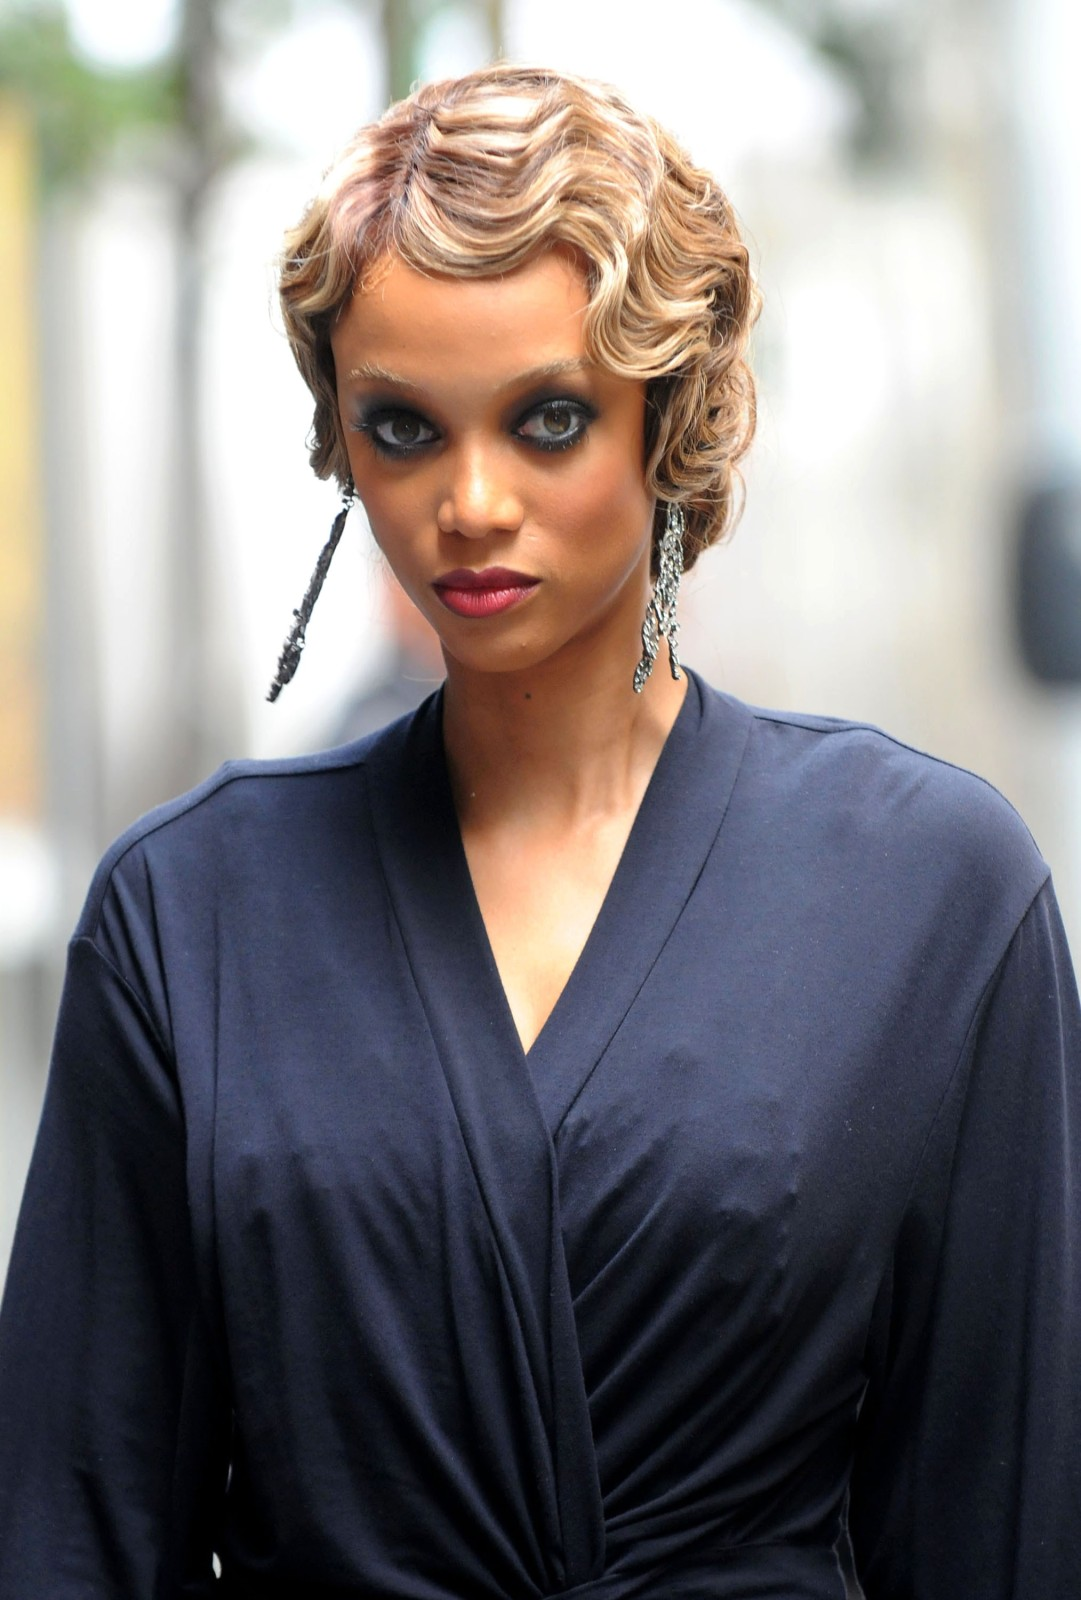 Classy Finger Waves Hairstyles To Look Jazzy Today